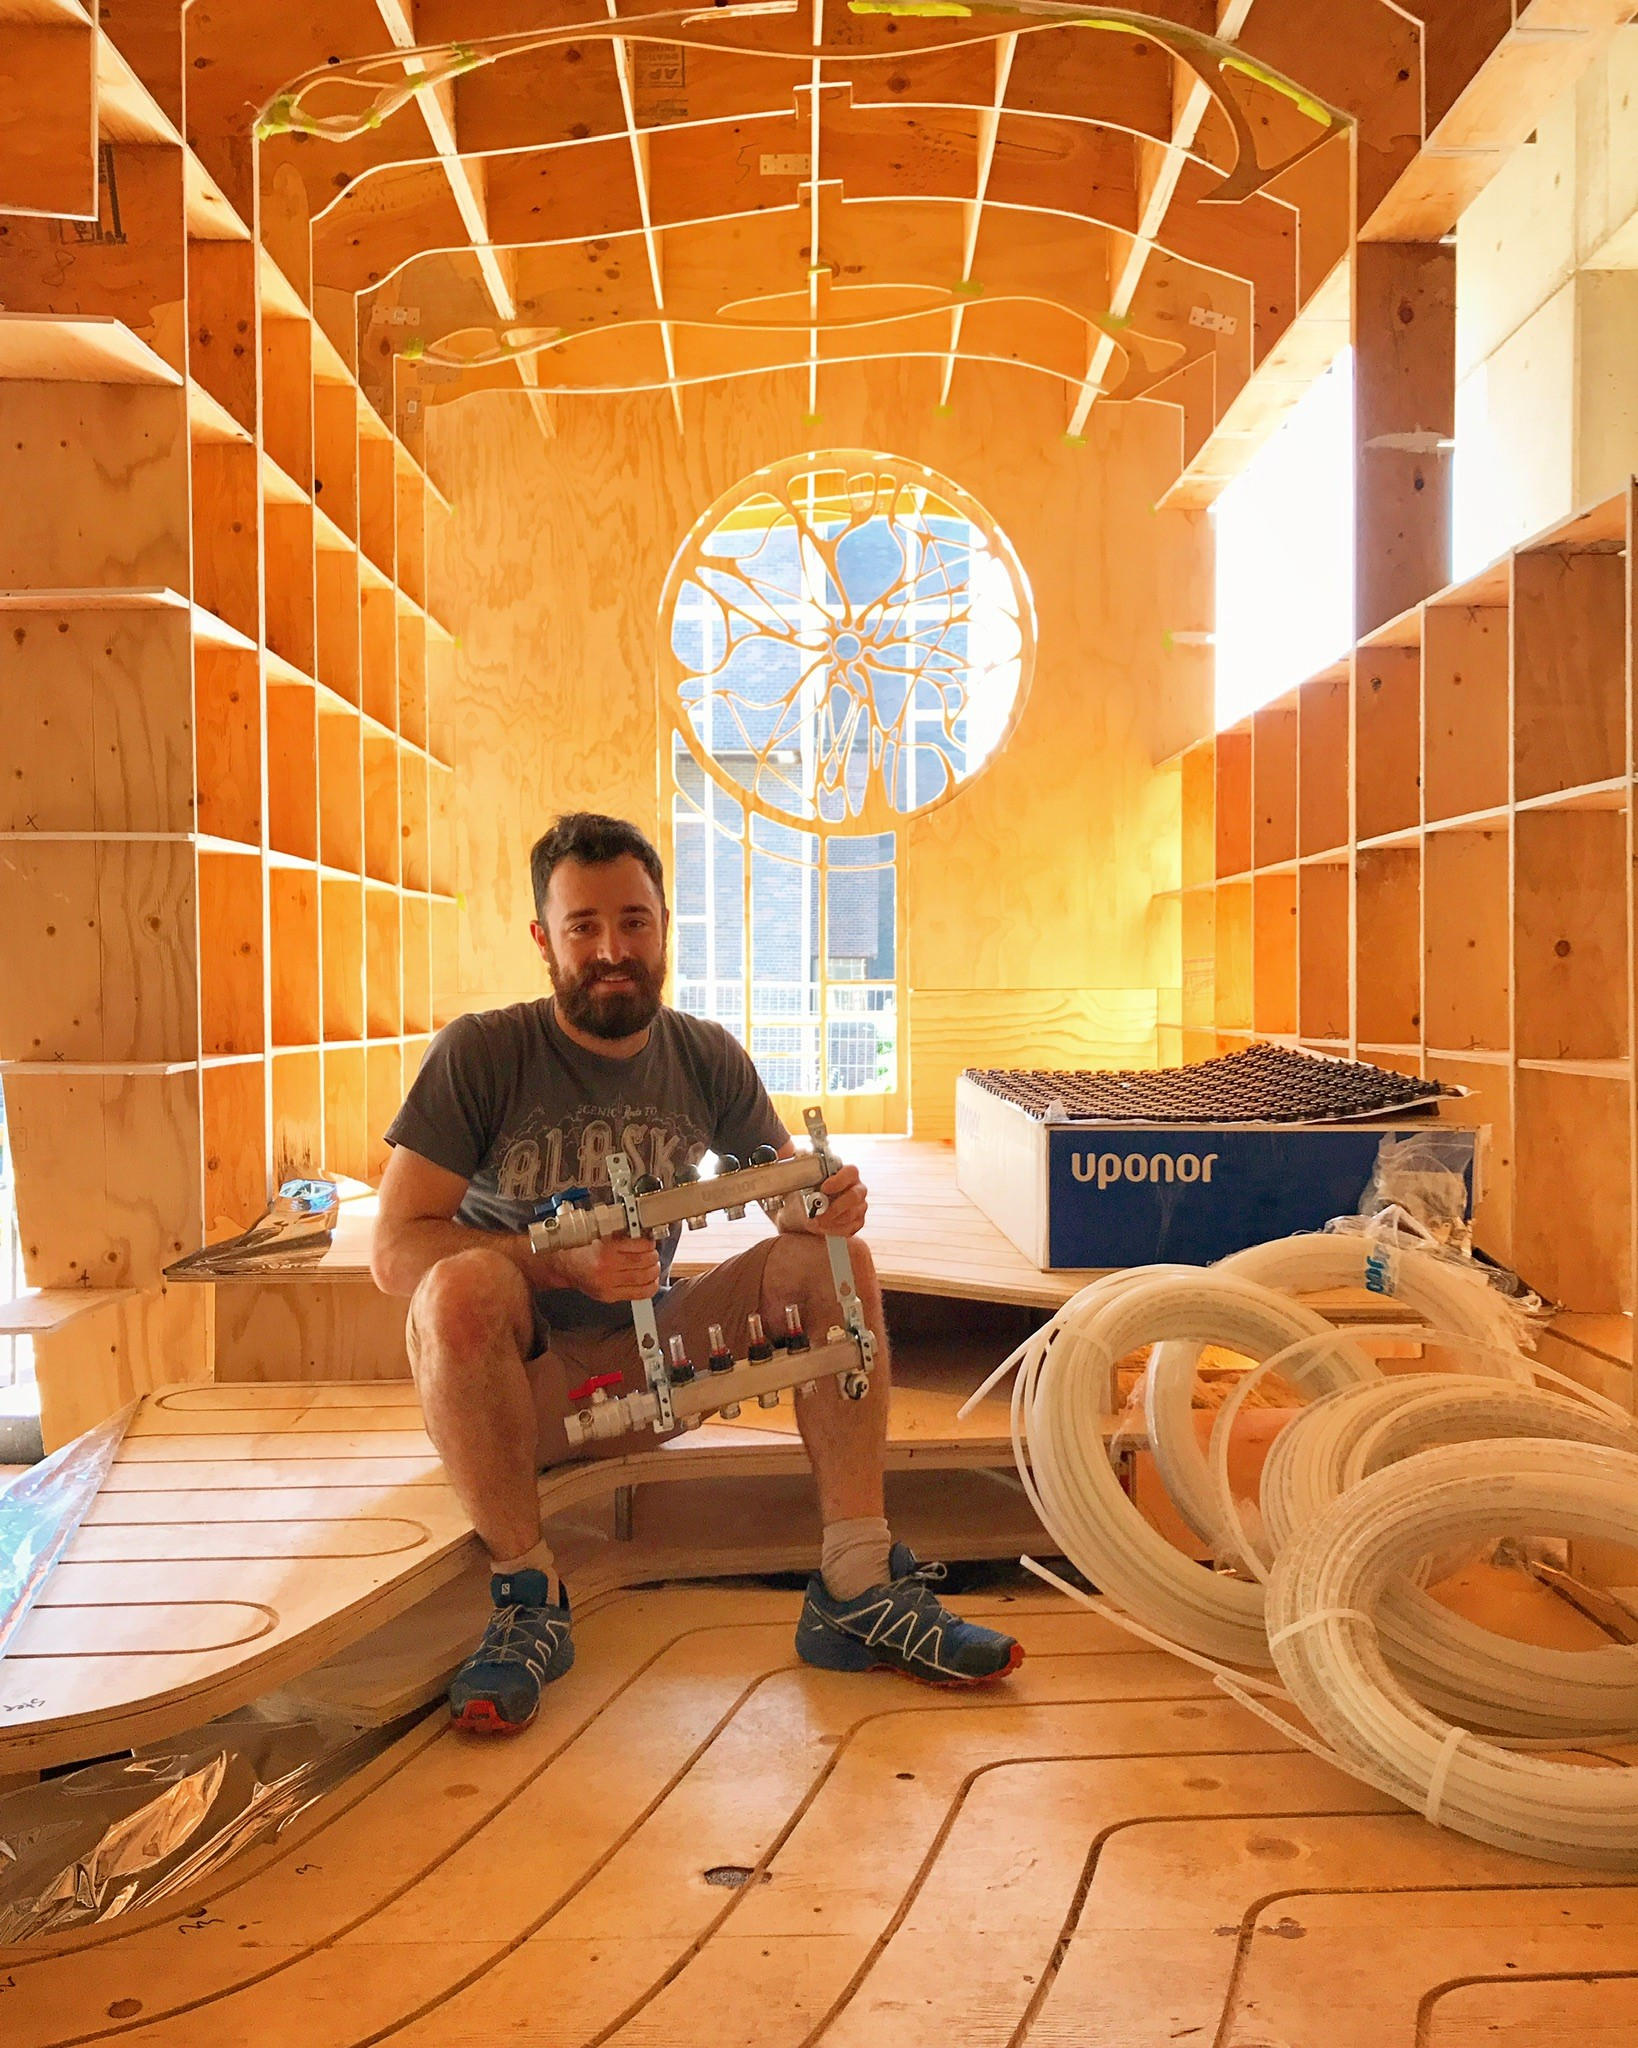 The interior of Ben Hayward's tiny home is designed in clean lines that give a visual impression of a larger space than the structure's actual size of 180 square feet.